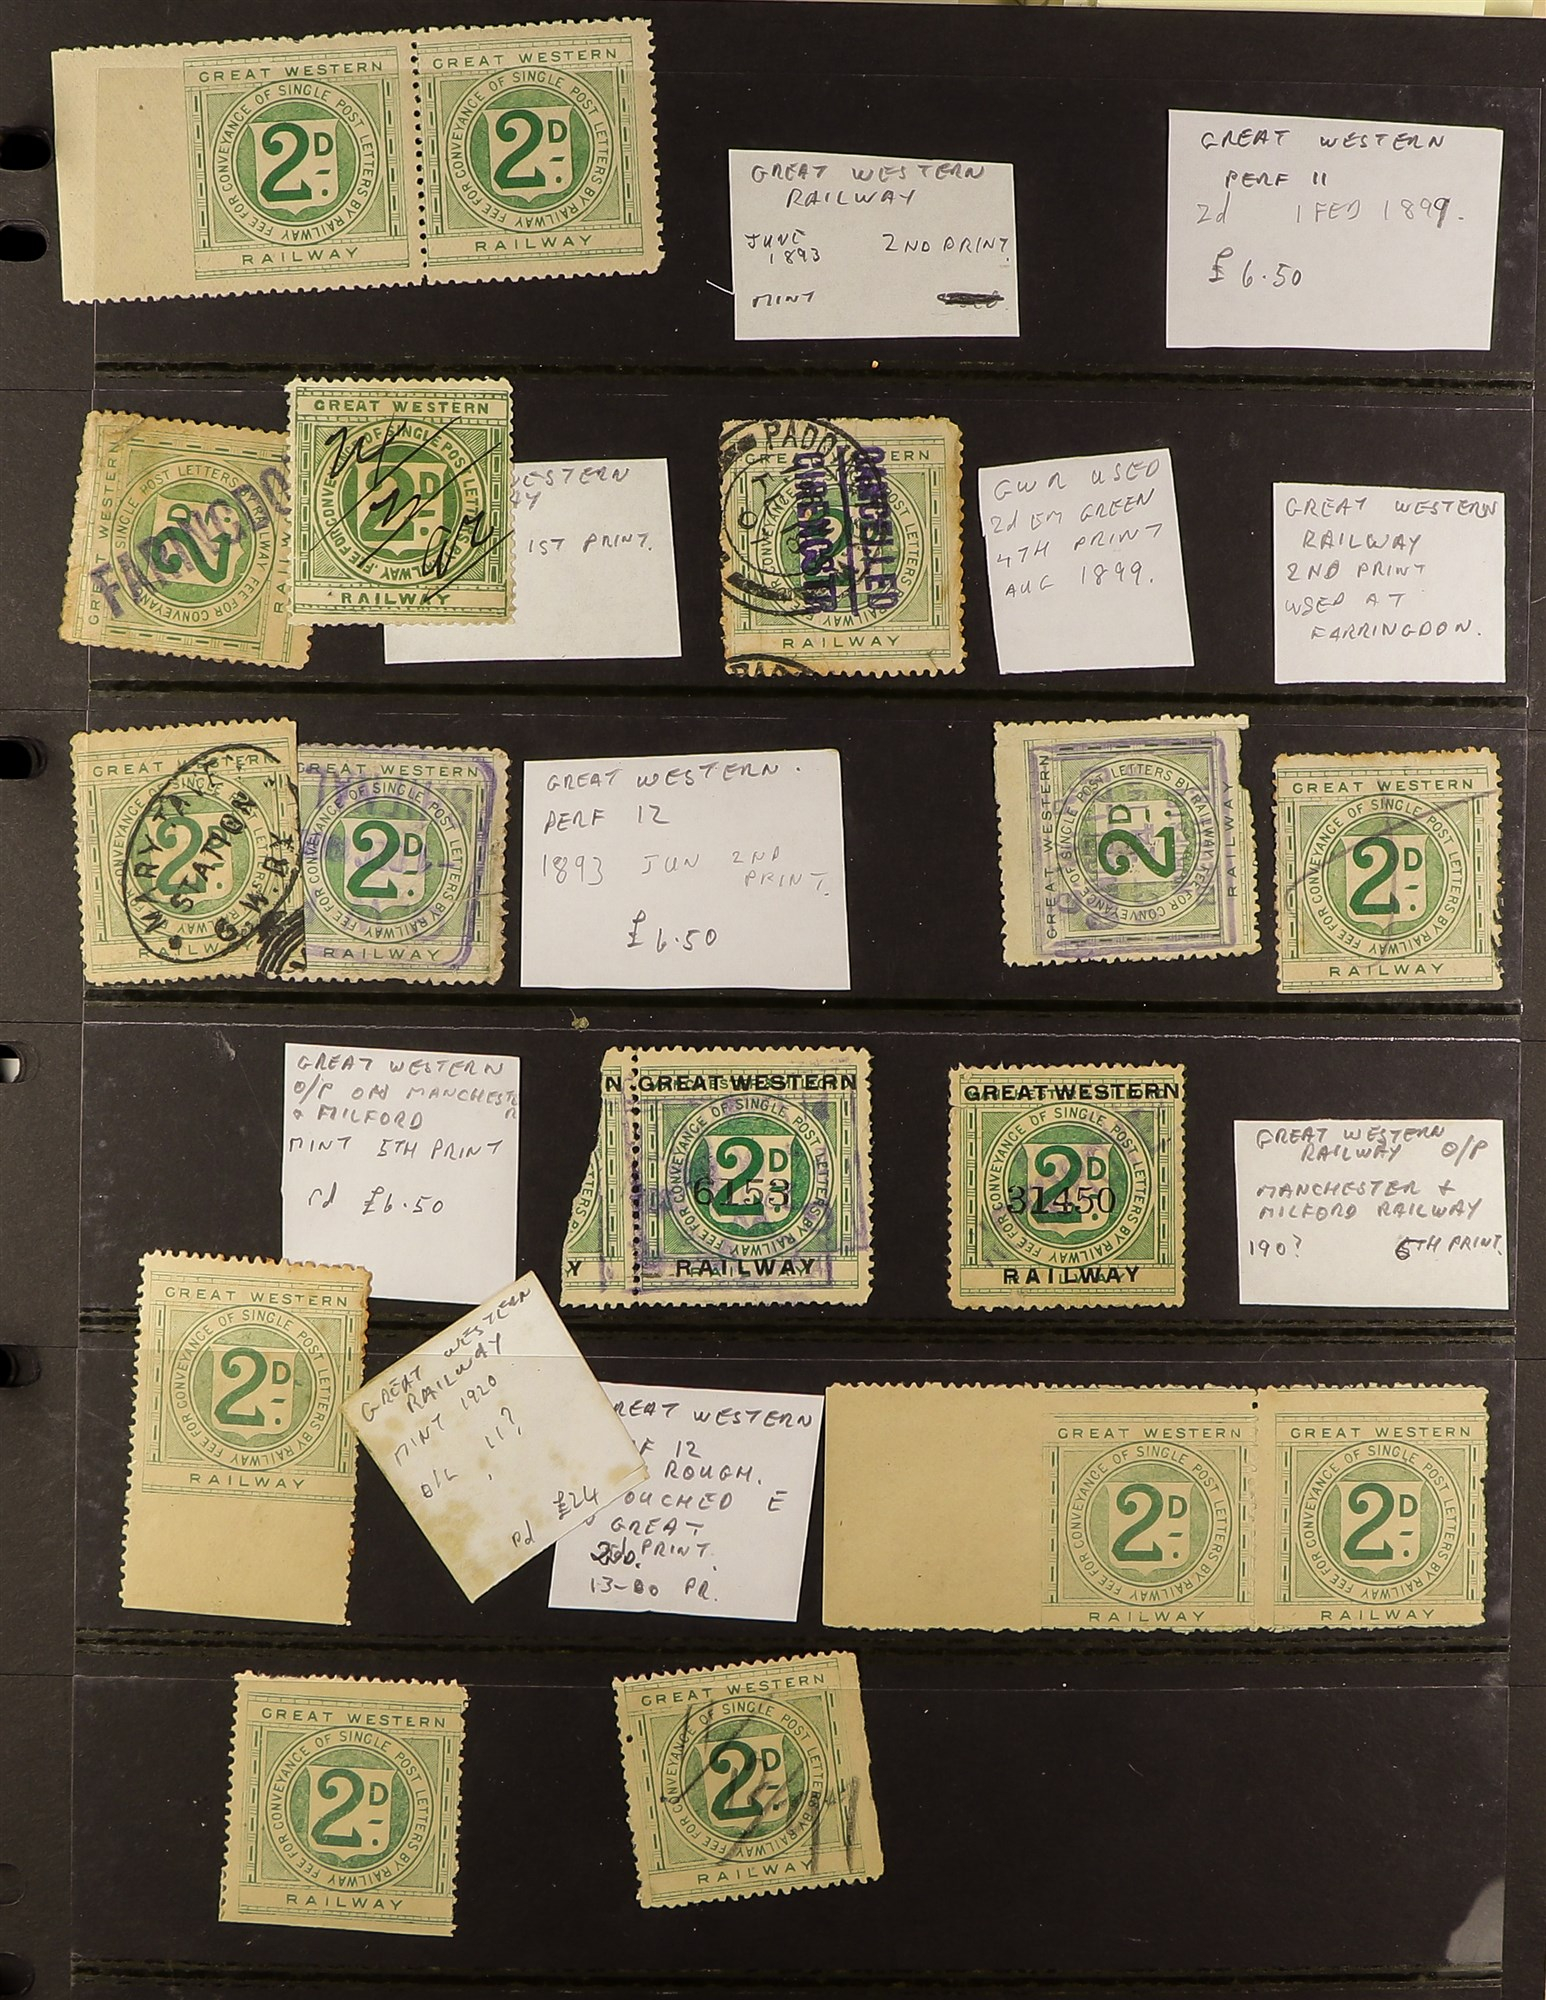 GREAT BRITAIN RAILWAY LETTER AND NEWSPAPER STAMPS 1890's-1940's COLLECTION in two albums, mint and - Image 6 of 24